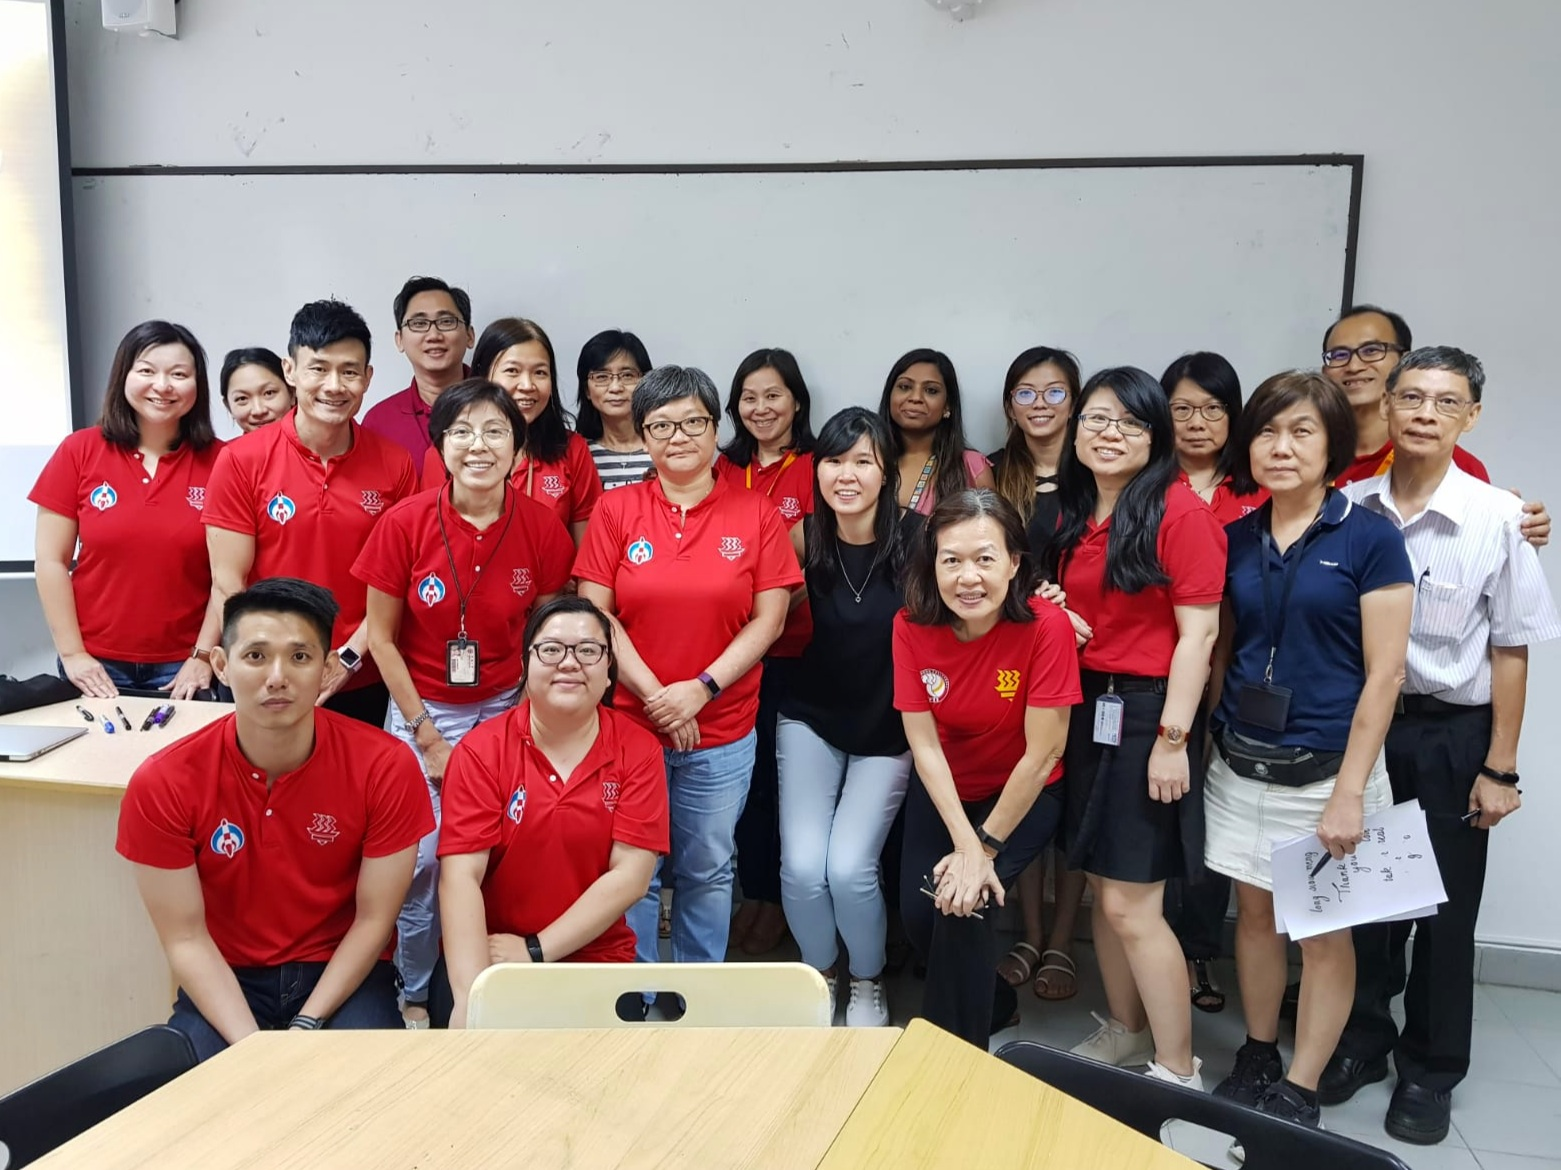 Team-building Calligraphy Workshop | Client: Hwa Chong Institution | Role: Teaching